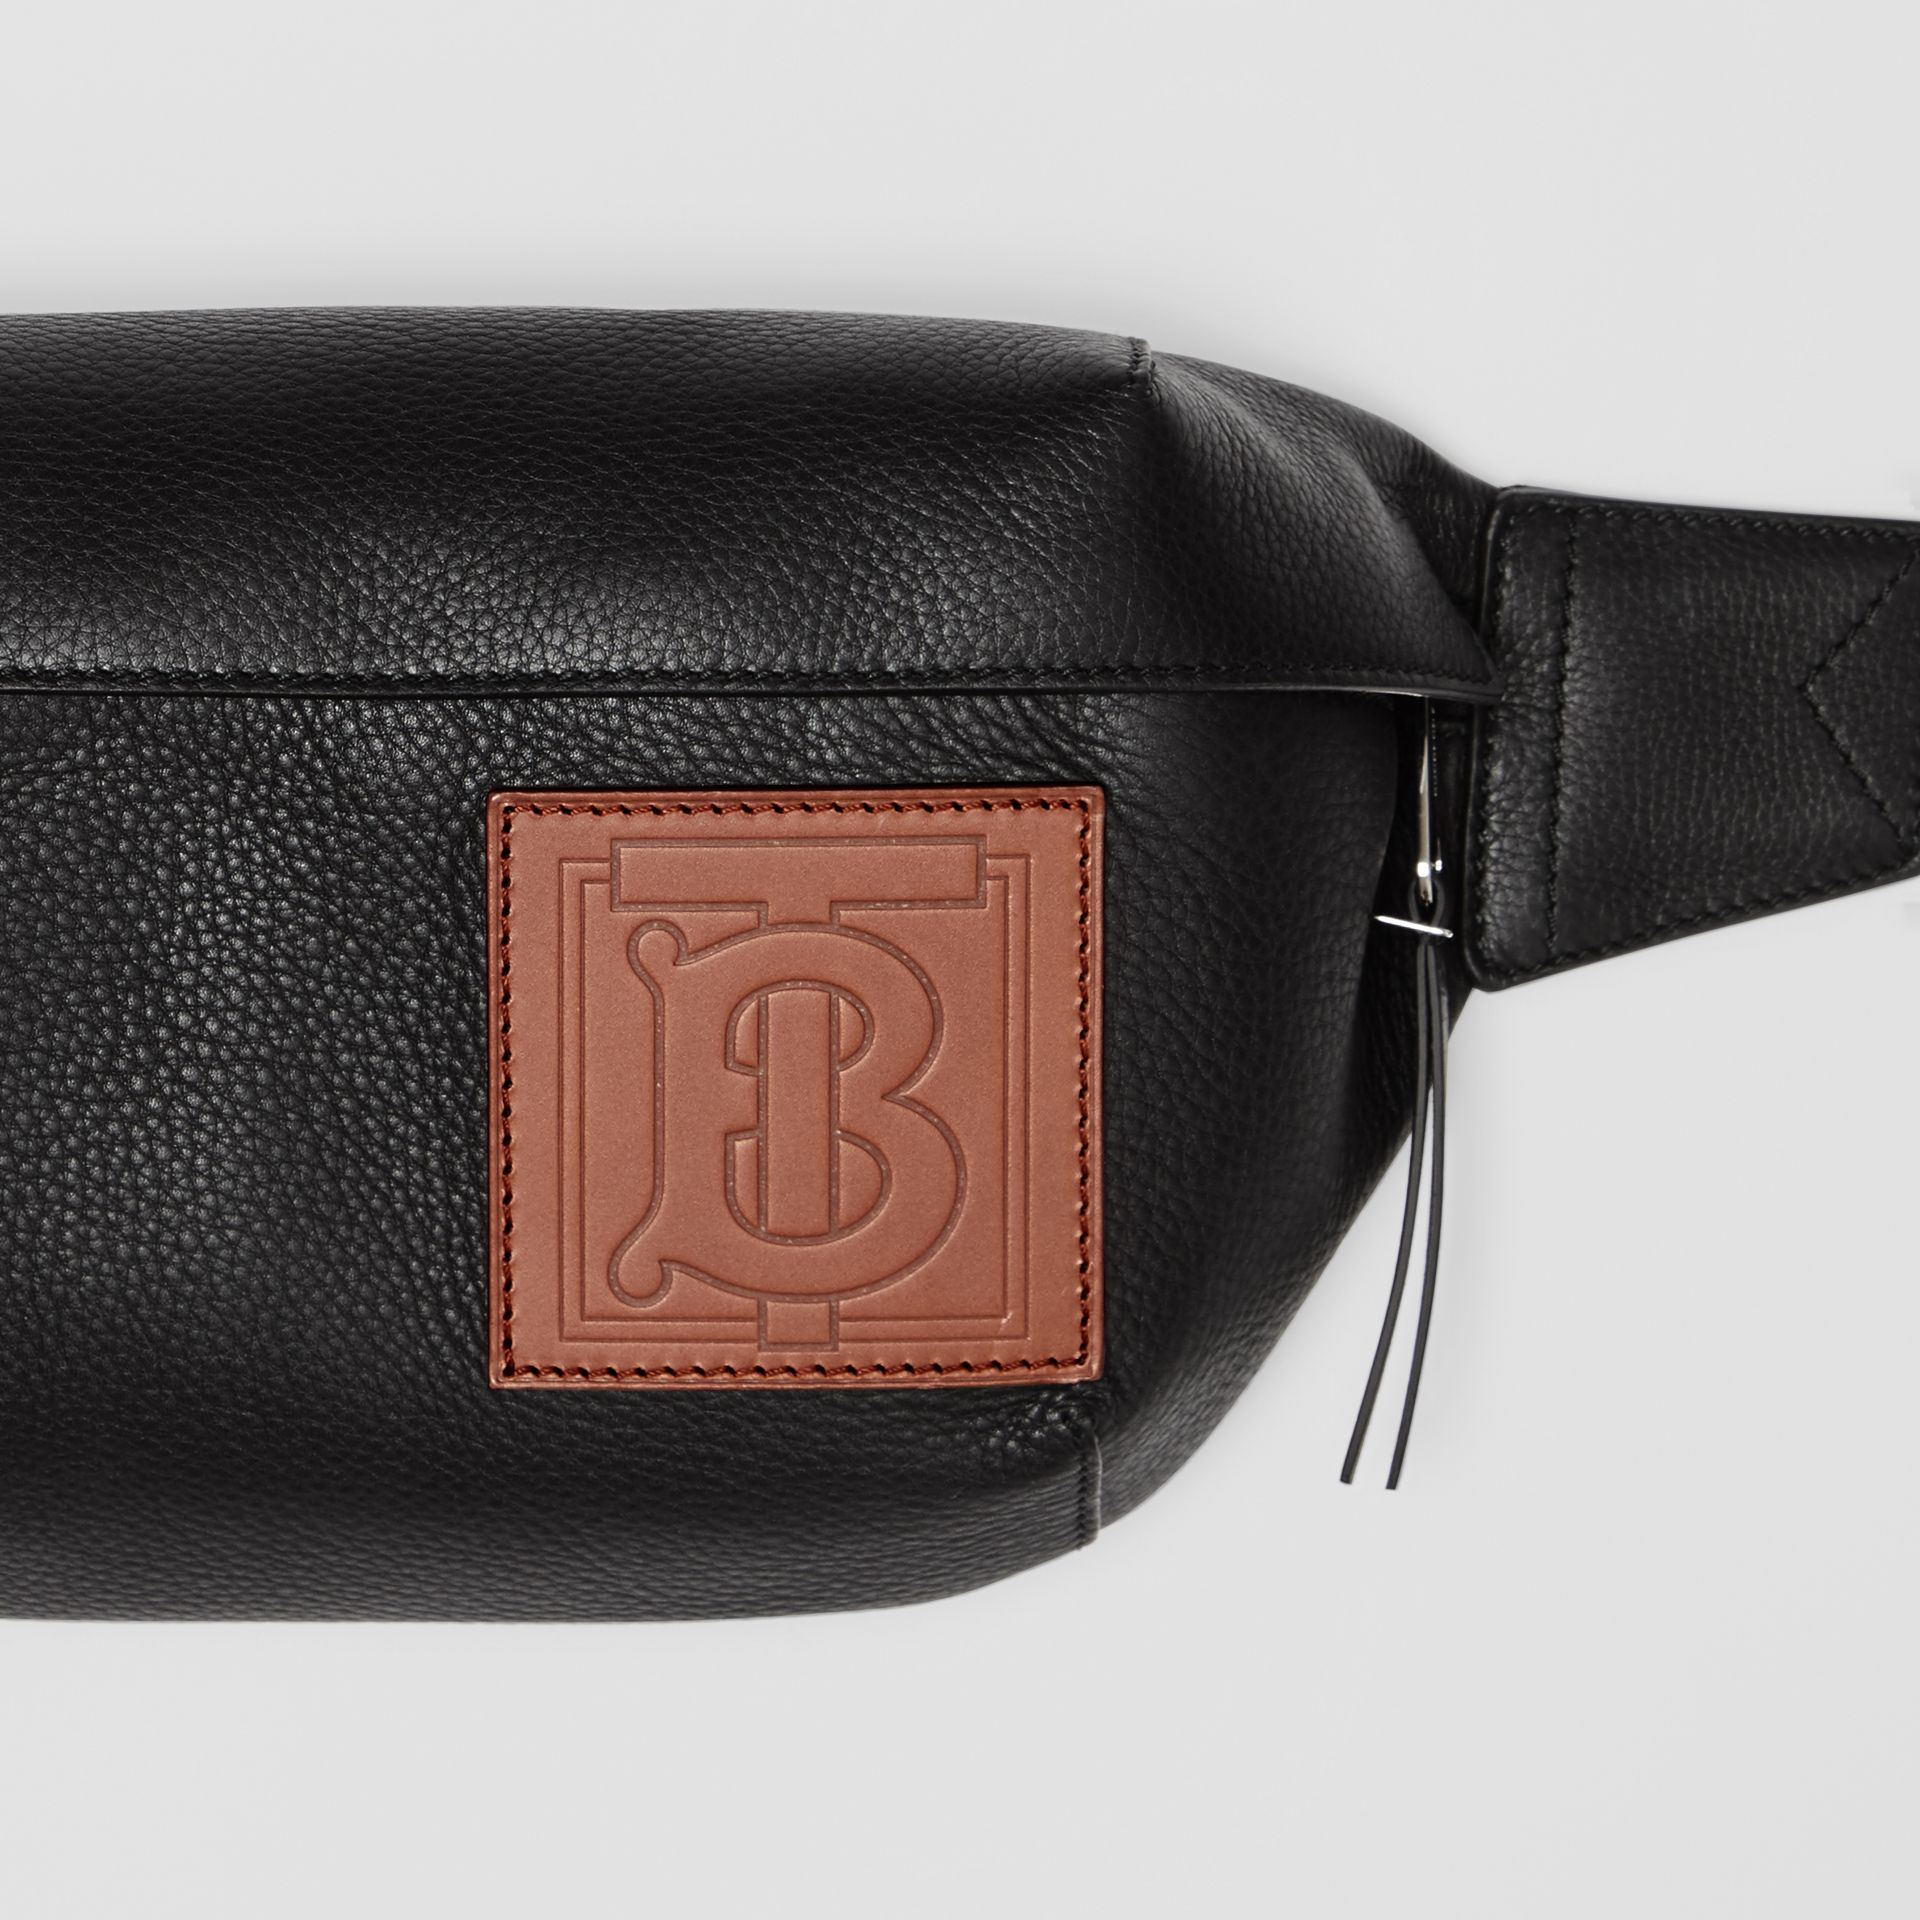 Medium Monogram Motif Leather Bum Bag in Black | Burberry - gallery image 1